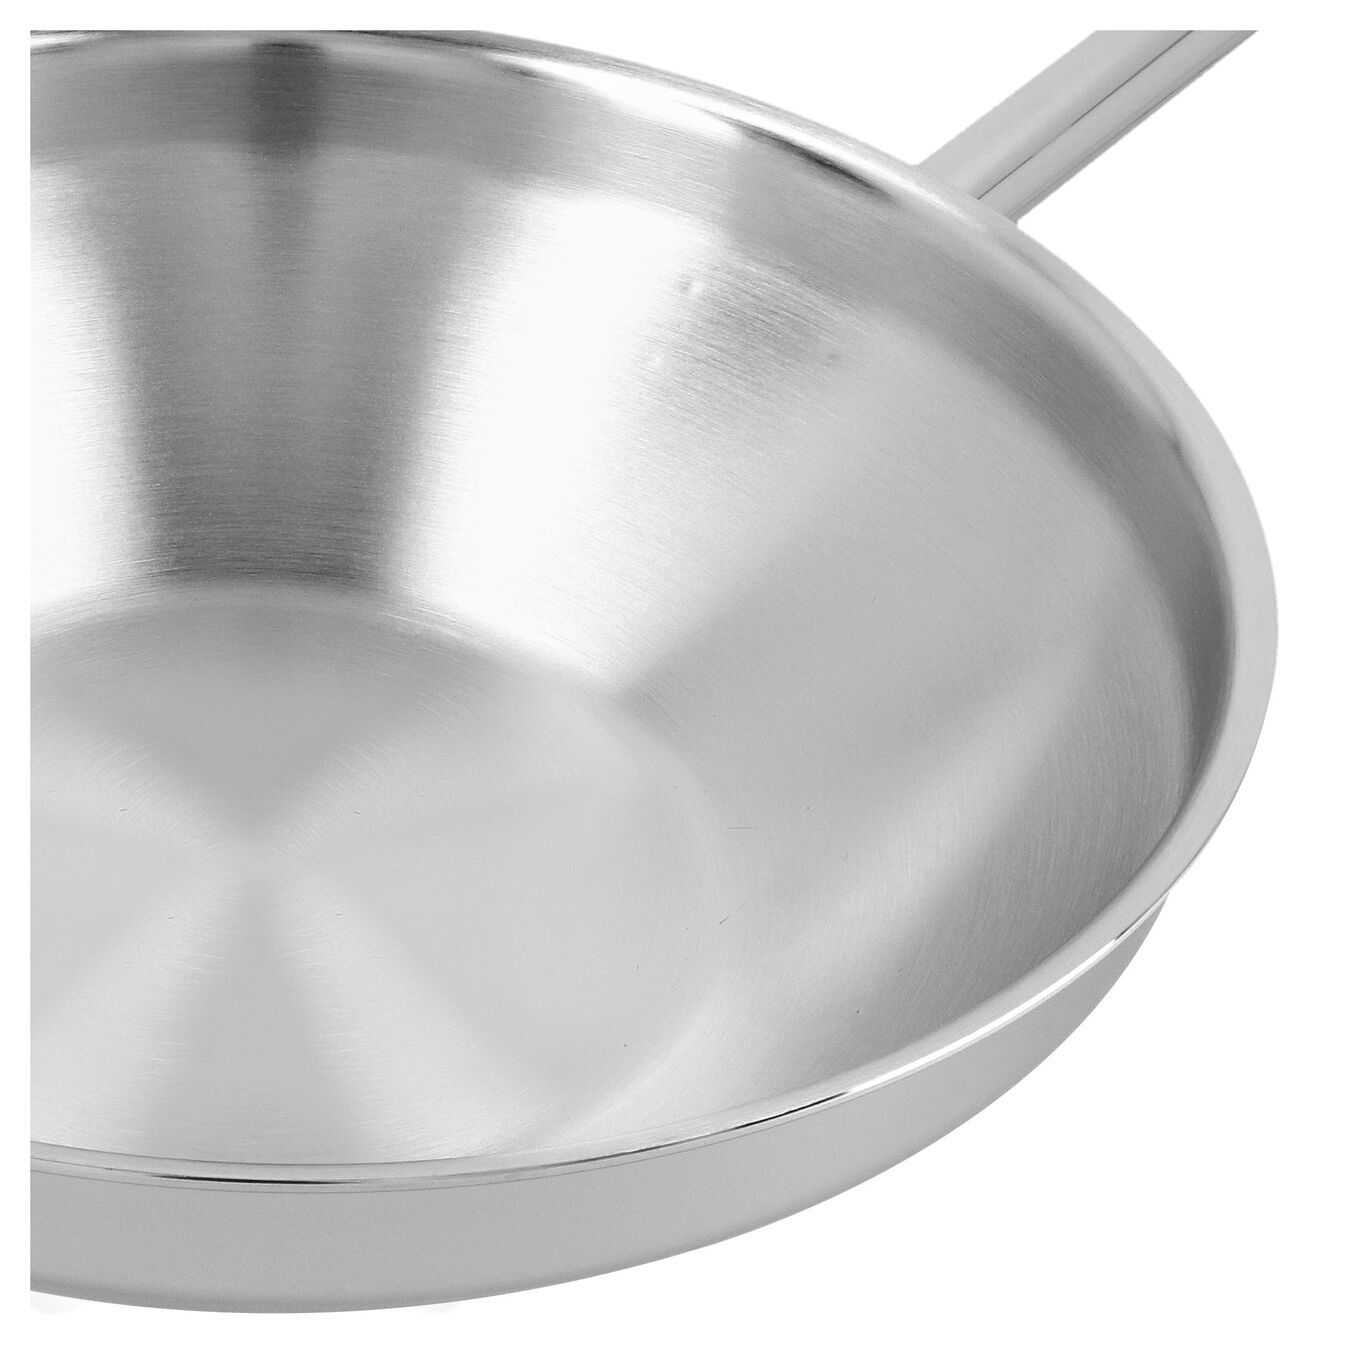 32 cm / 12.5 inch 18/10 Stainless Steel Wok without lid,,large 5